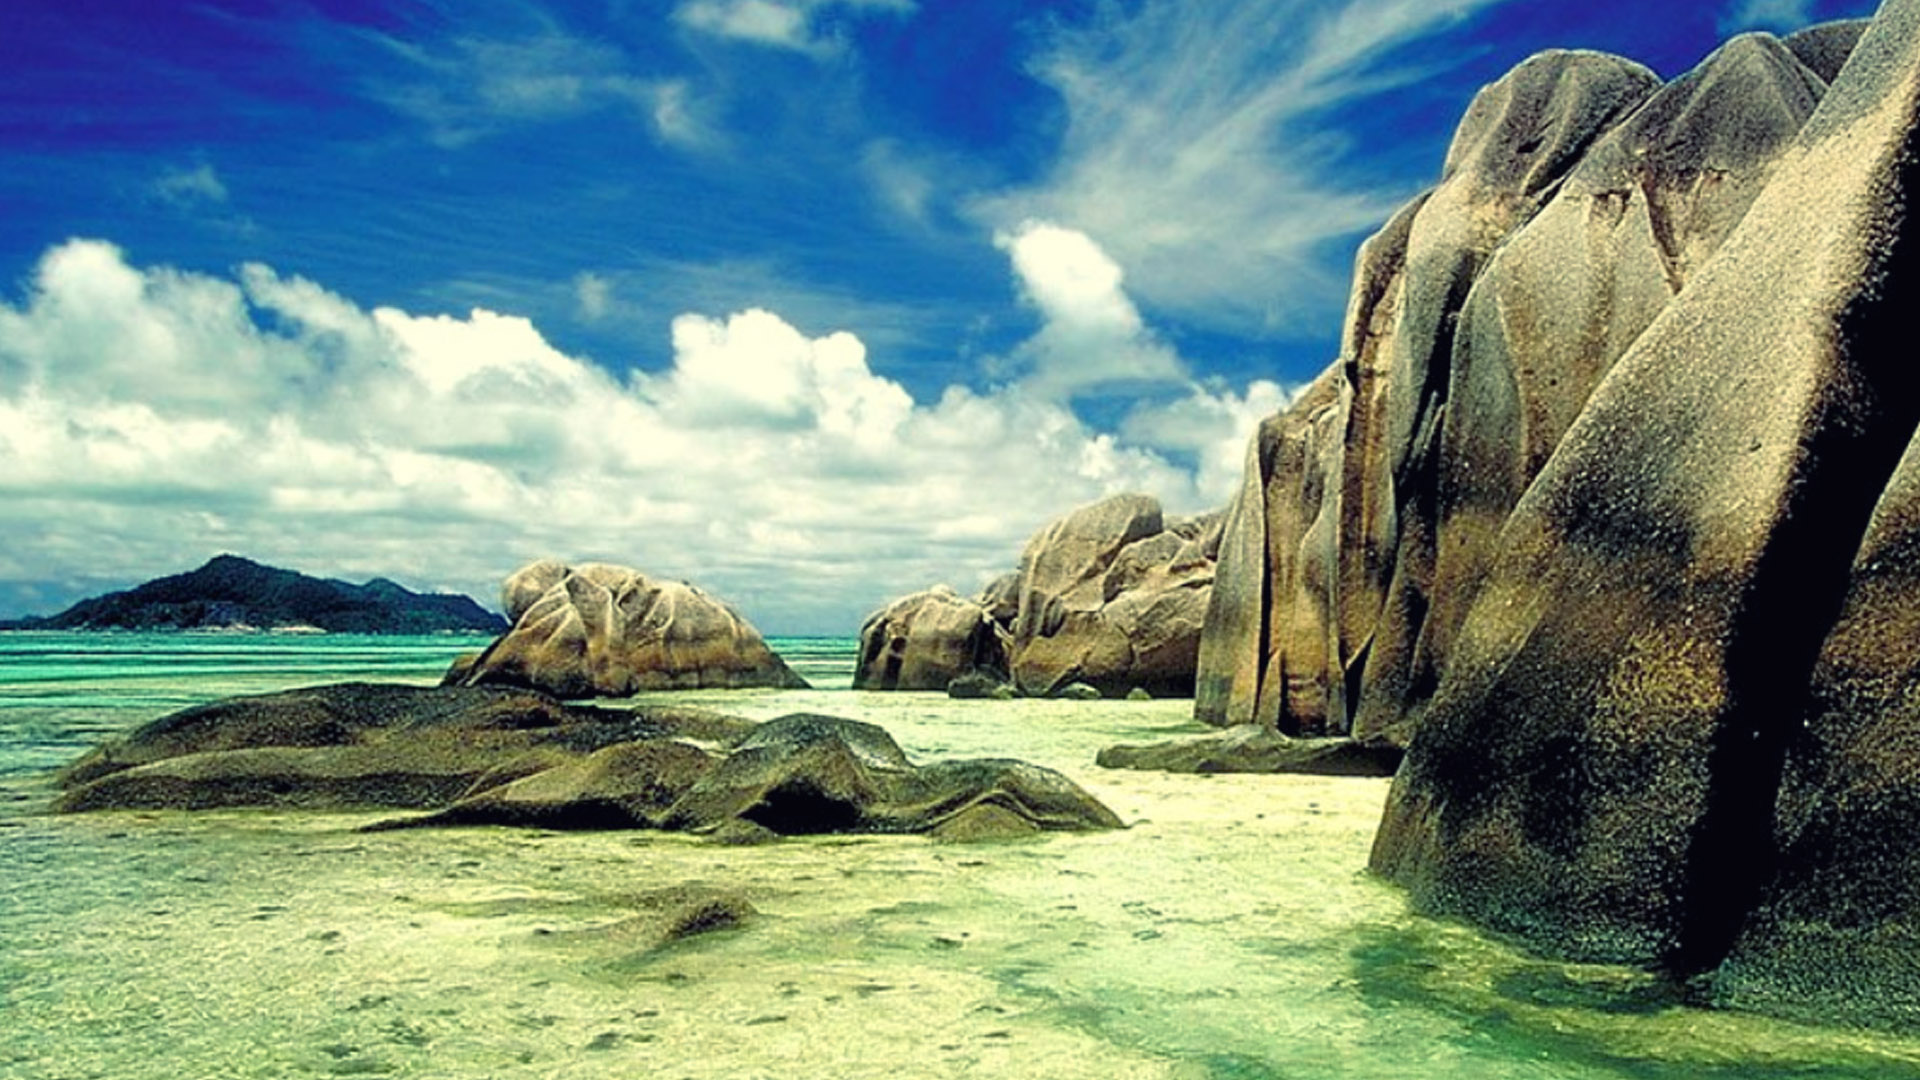 Hd Seychelles Beach Hdr Wallpaper Download Free 1920x1080px